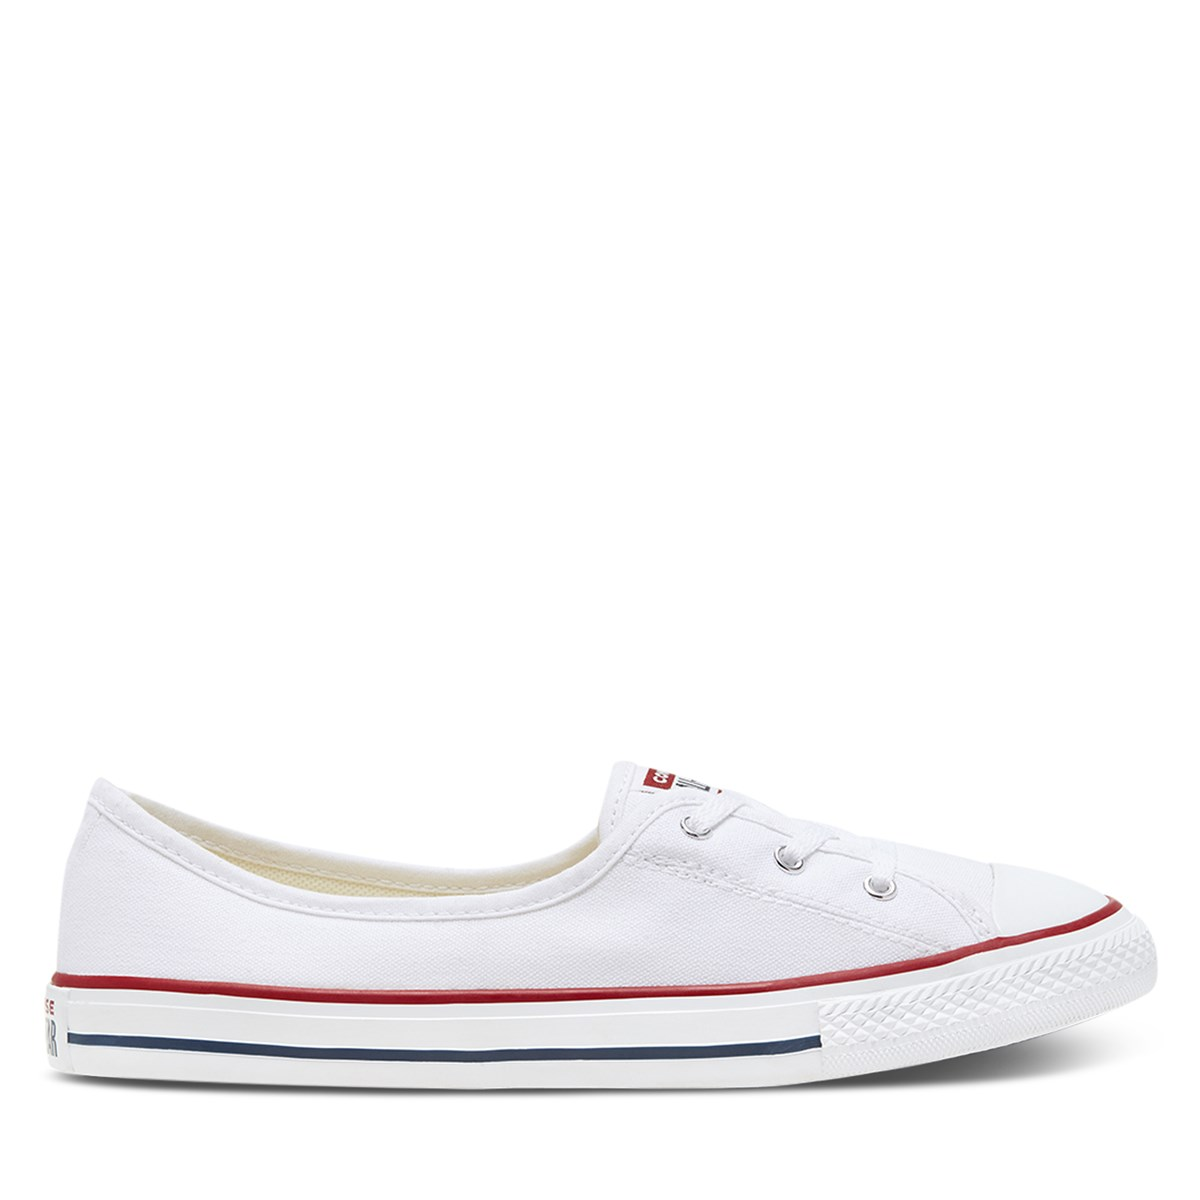 Women's Chuck Taylor All Star Ballet Slip-Ons in White